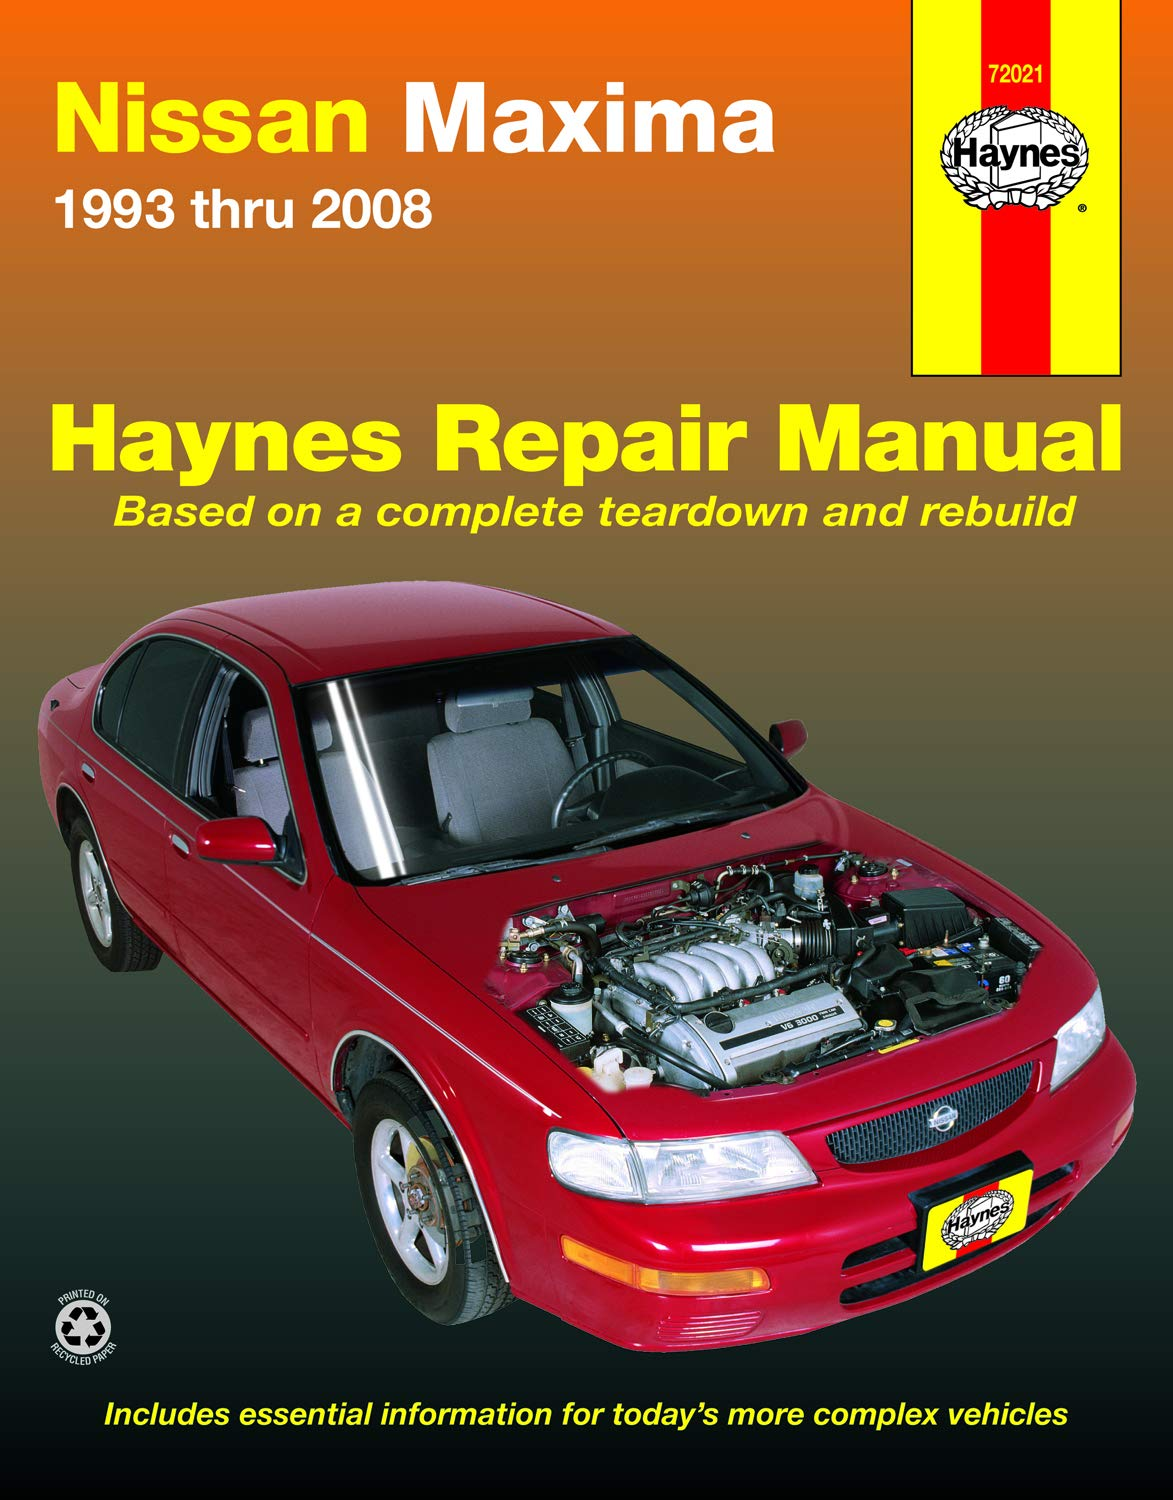 Amazon.com: Nissan Maxima 1993 thru 2008 (Haynes Automotive ...